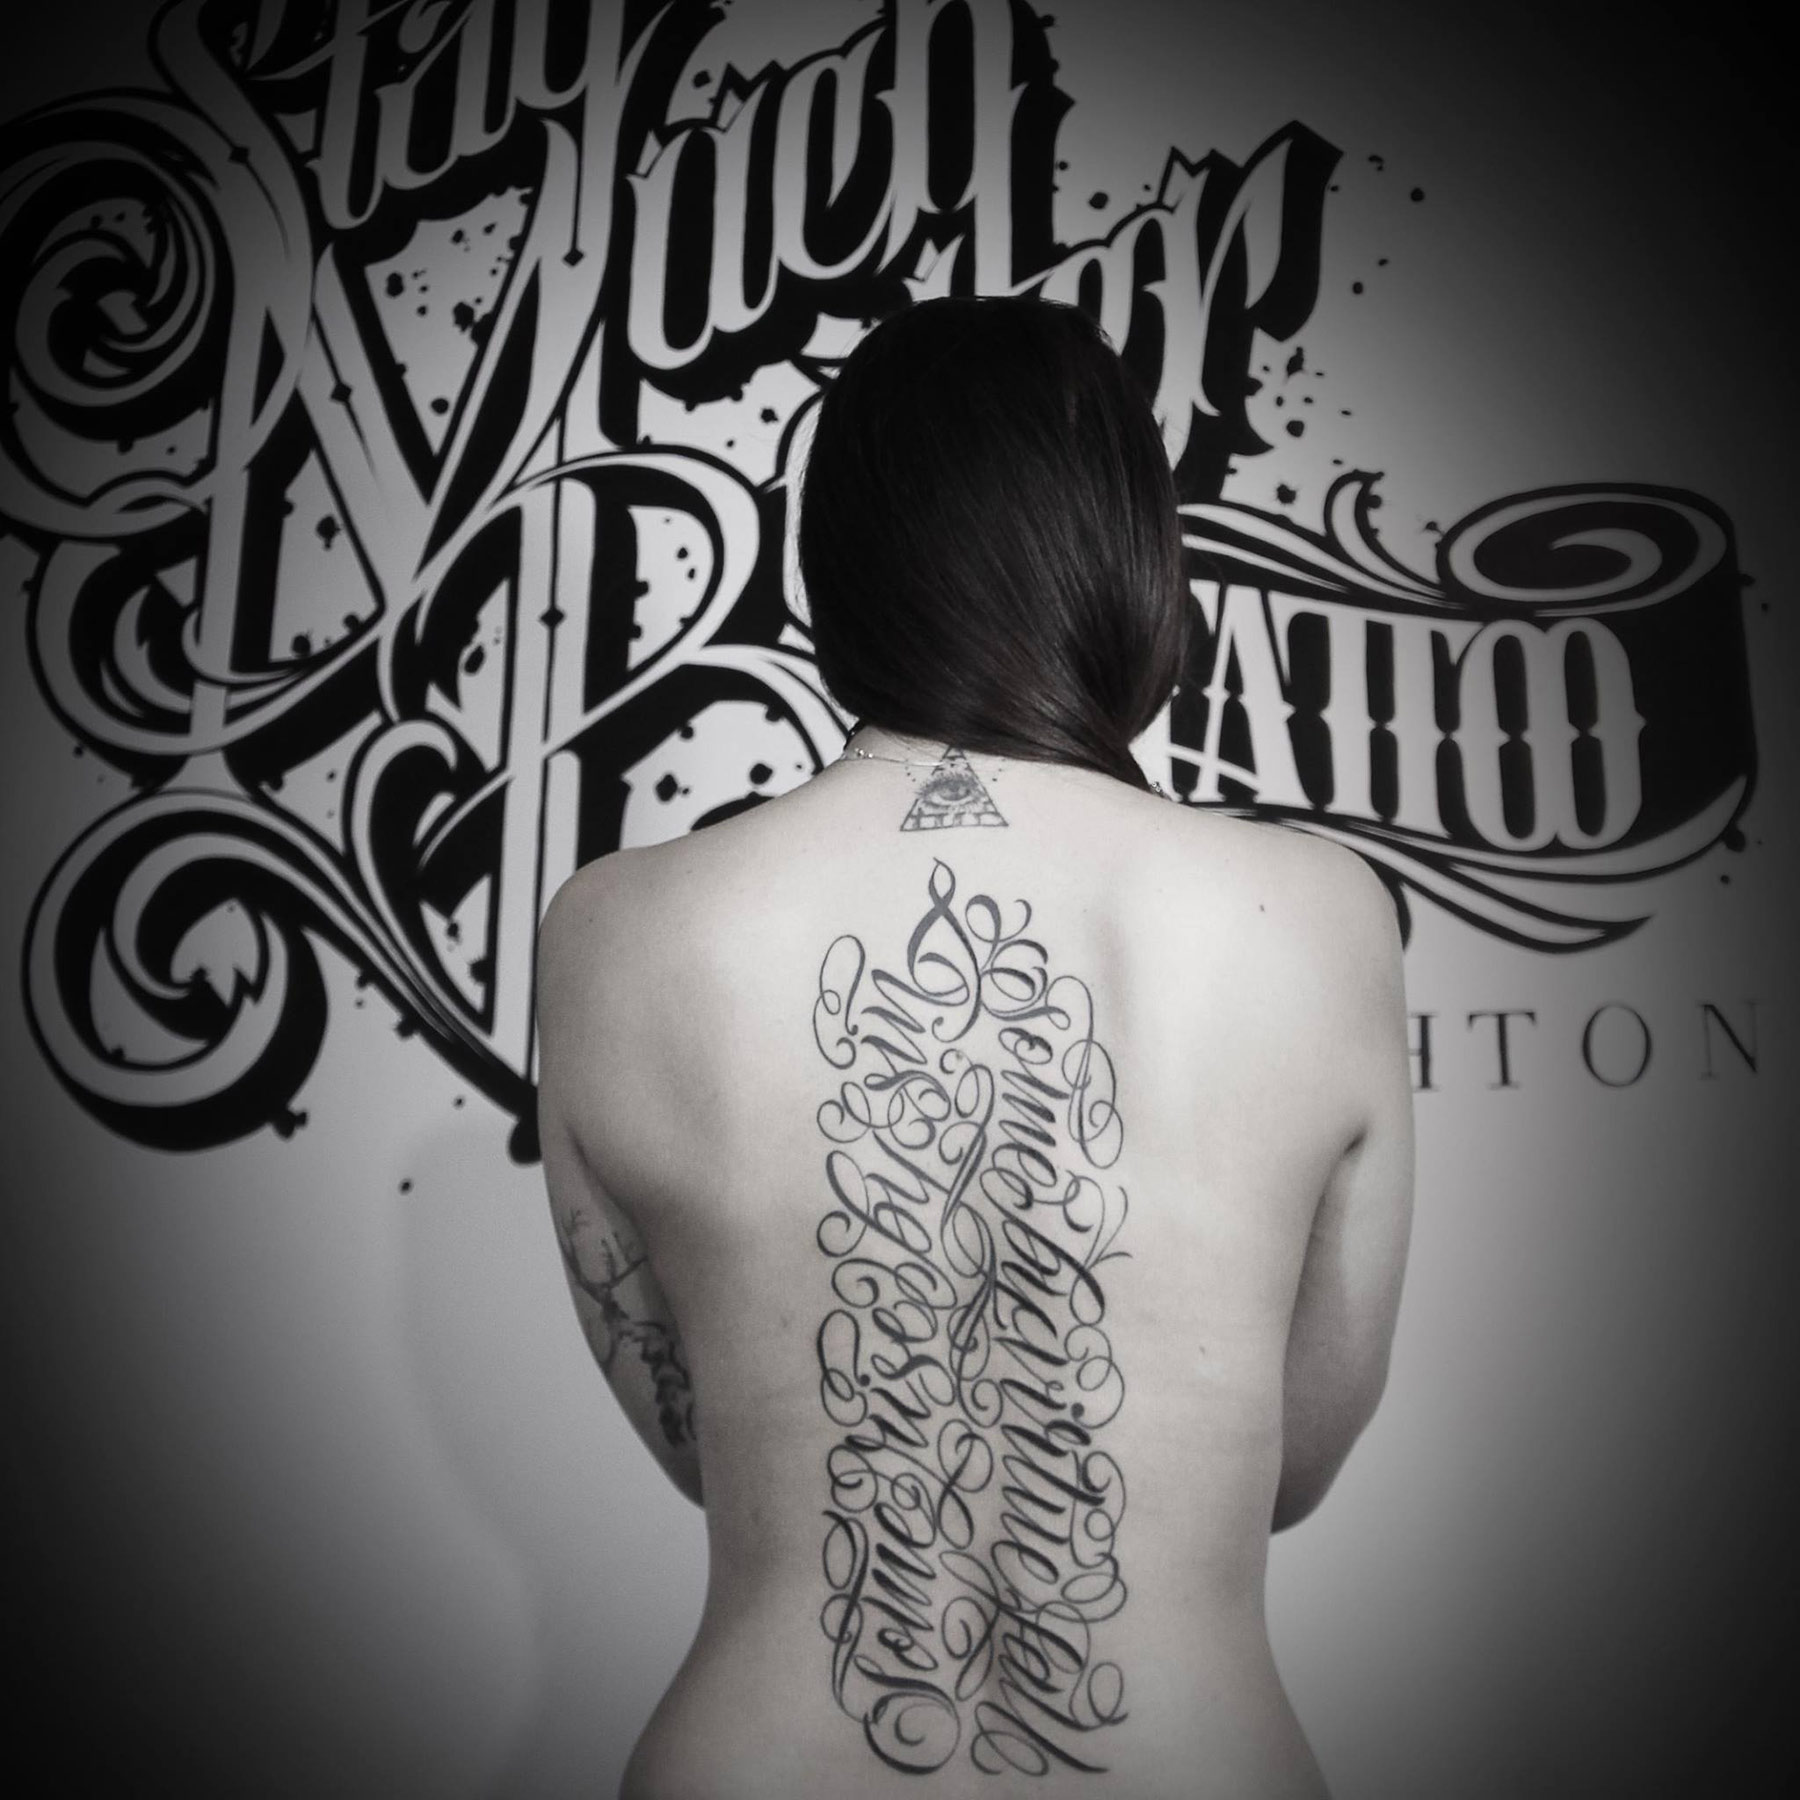 Calligraphy Tattoo Picture Stay Much Better Tattoo Brighton Tattoo Shop Bn1 6dn Mister